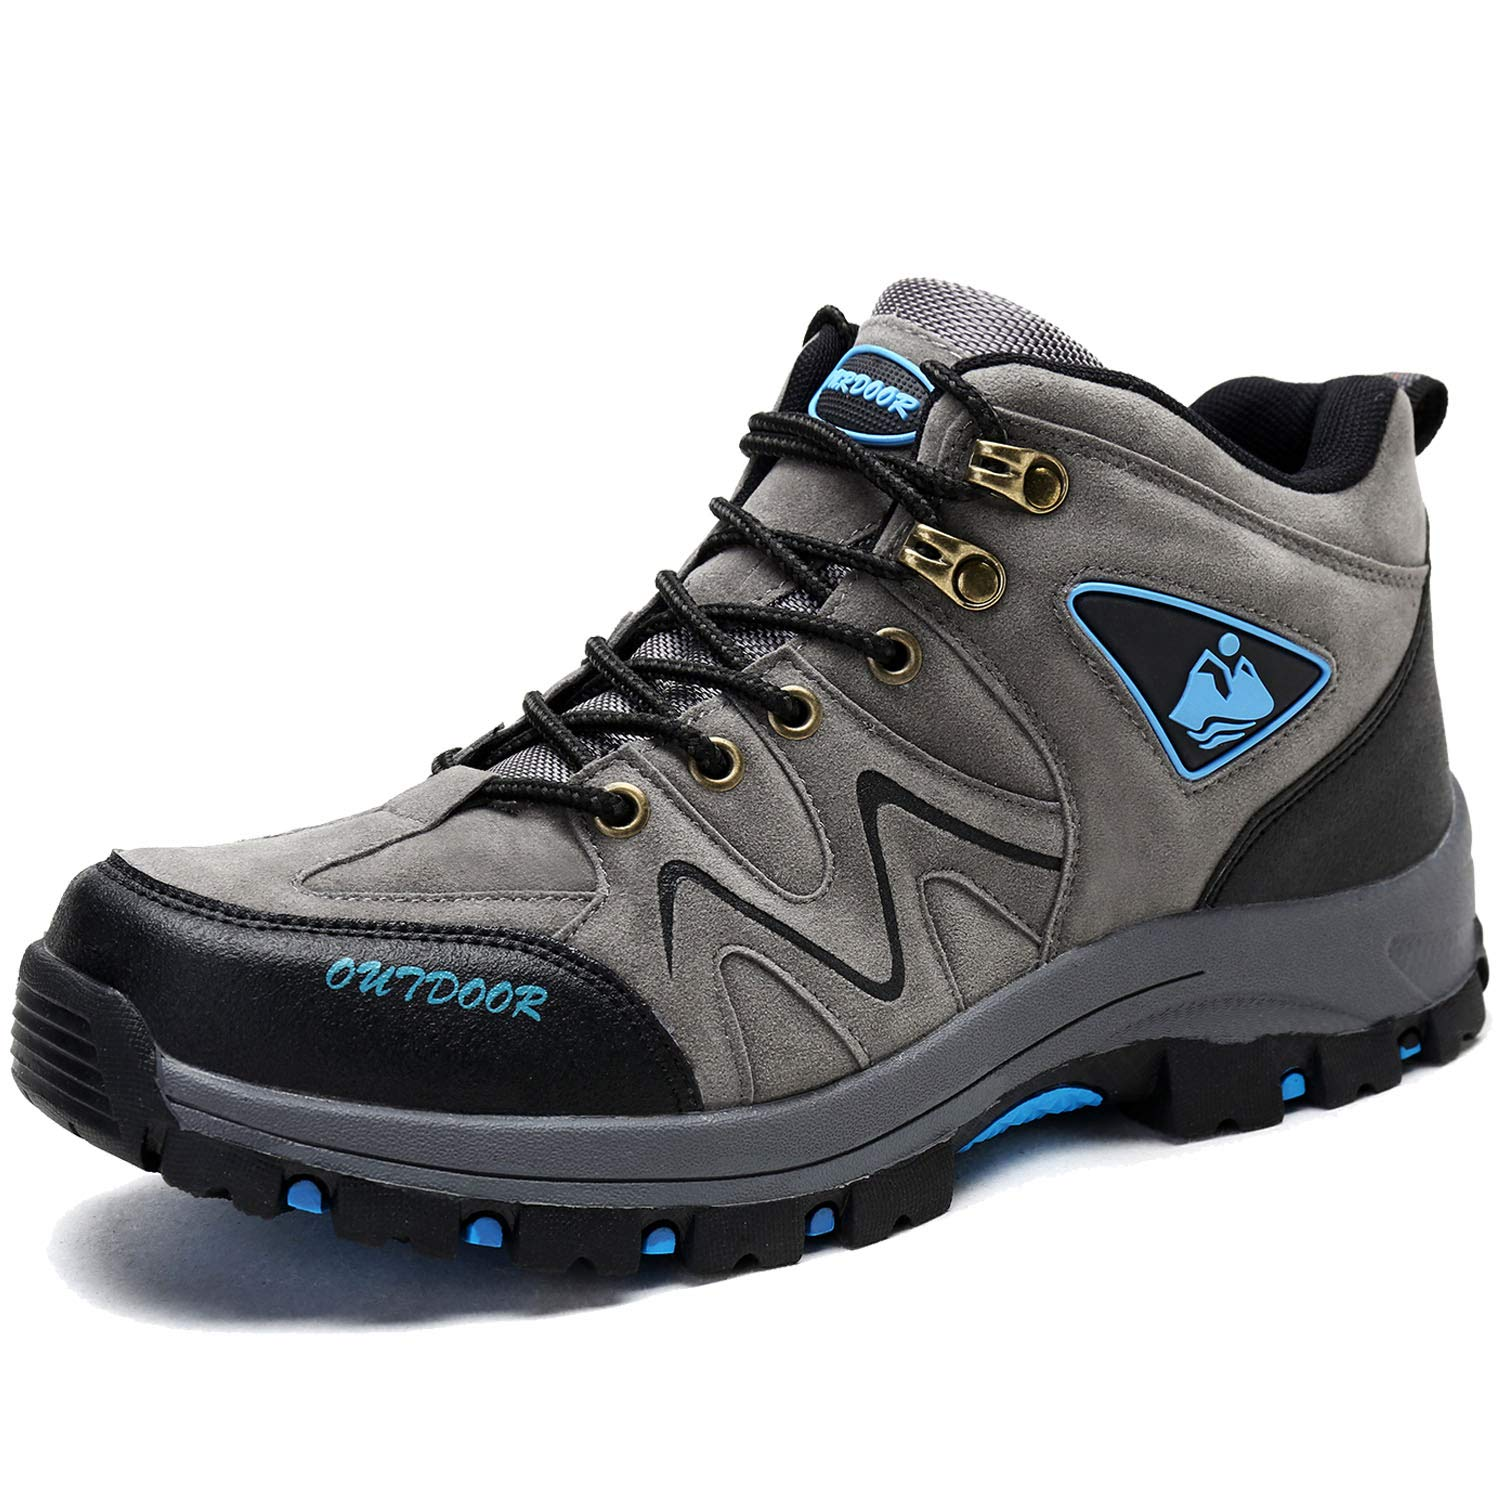 f8a602c877dfdb BIGU Hiking Boots Men's Mountain Climbing Ankle Boots Waterproof Hiking  Shoes Lightweight Outdoor Sport Trainers High Top Trekking Shoes Walking  Sneakers